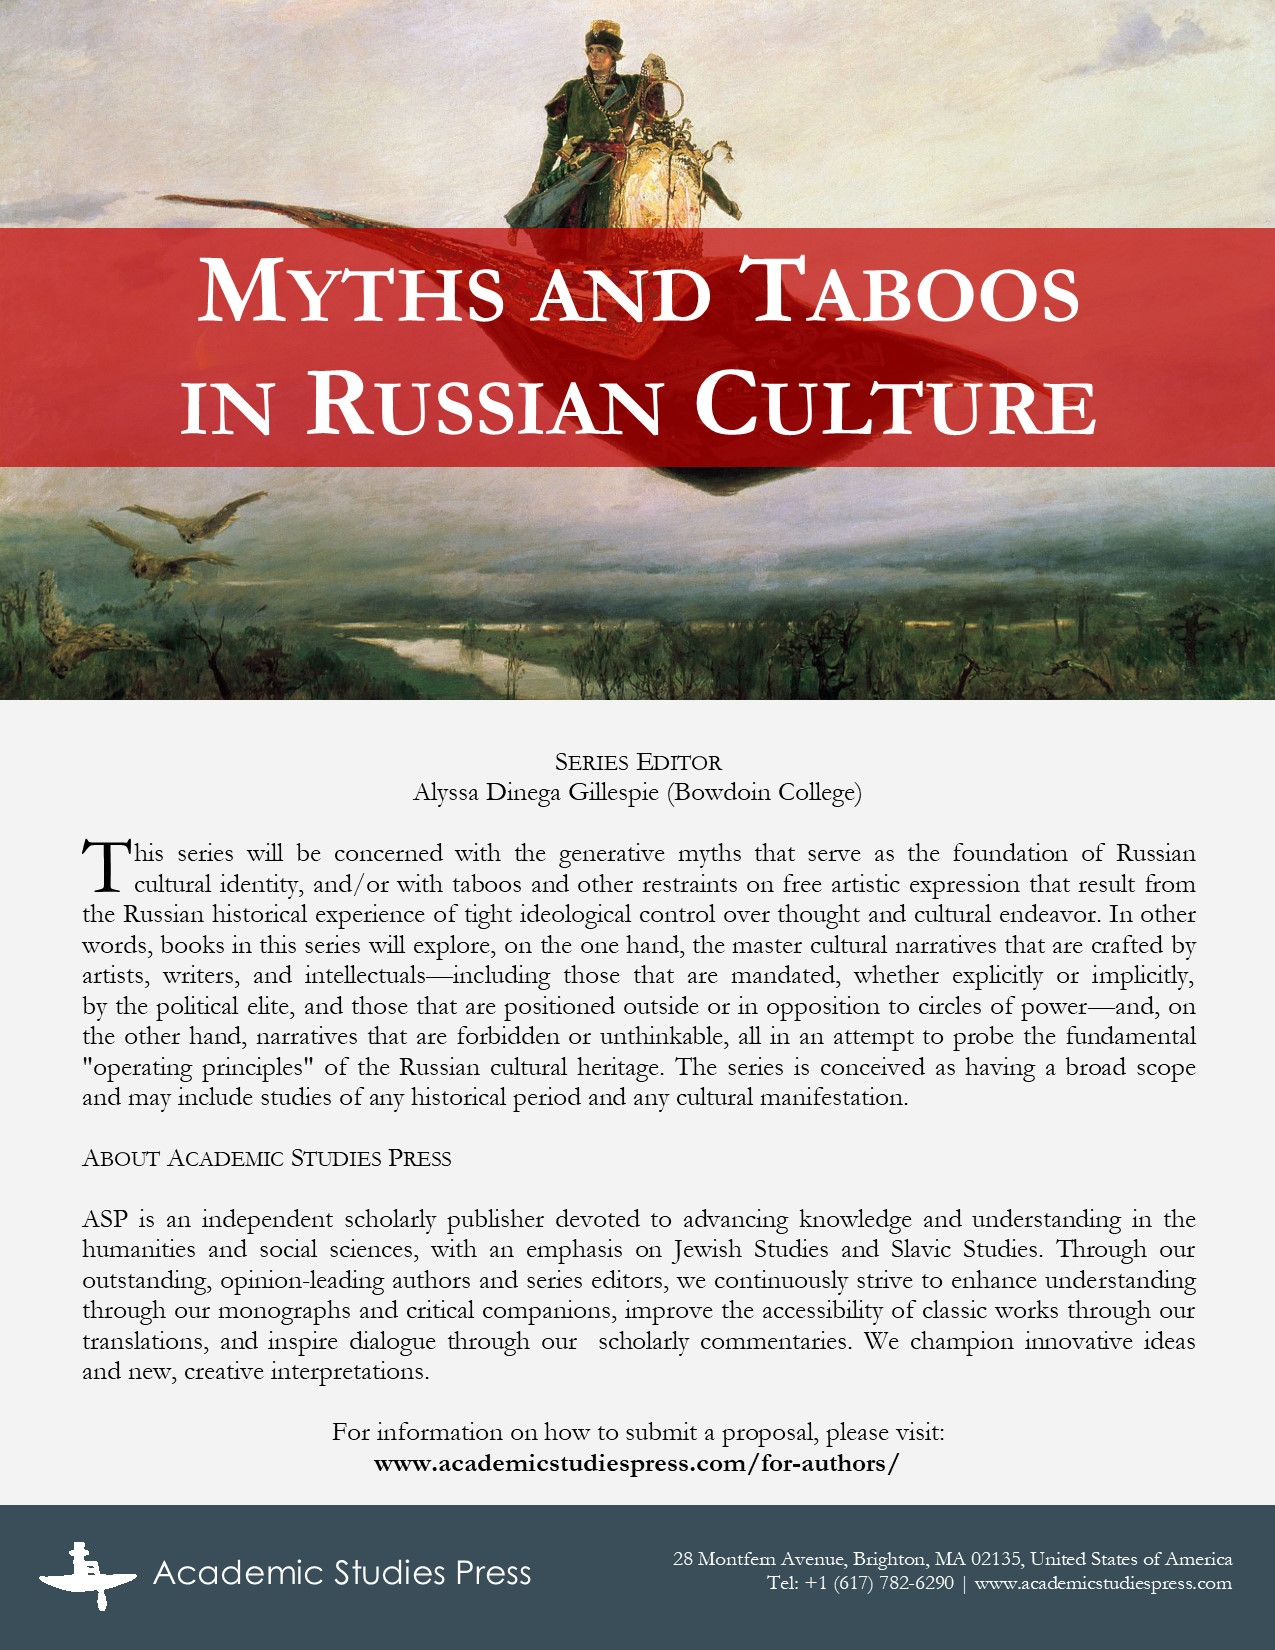 Myths and Taboos in Russian Culture Flyer.jpg